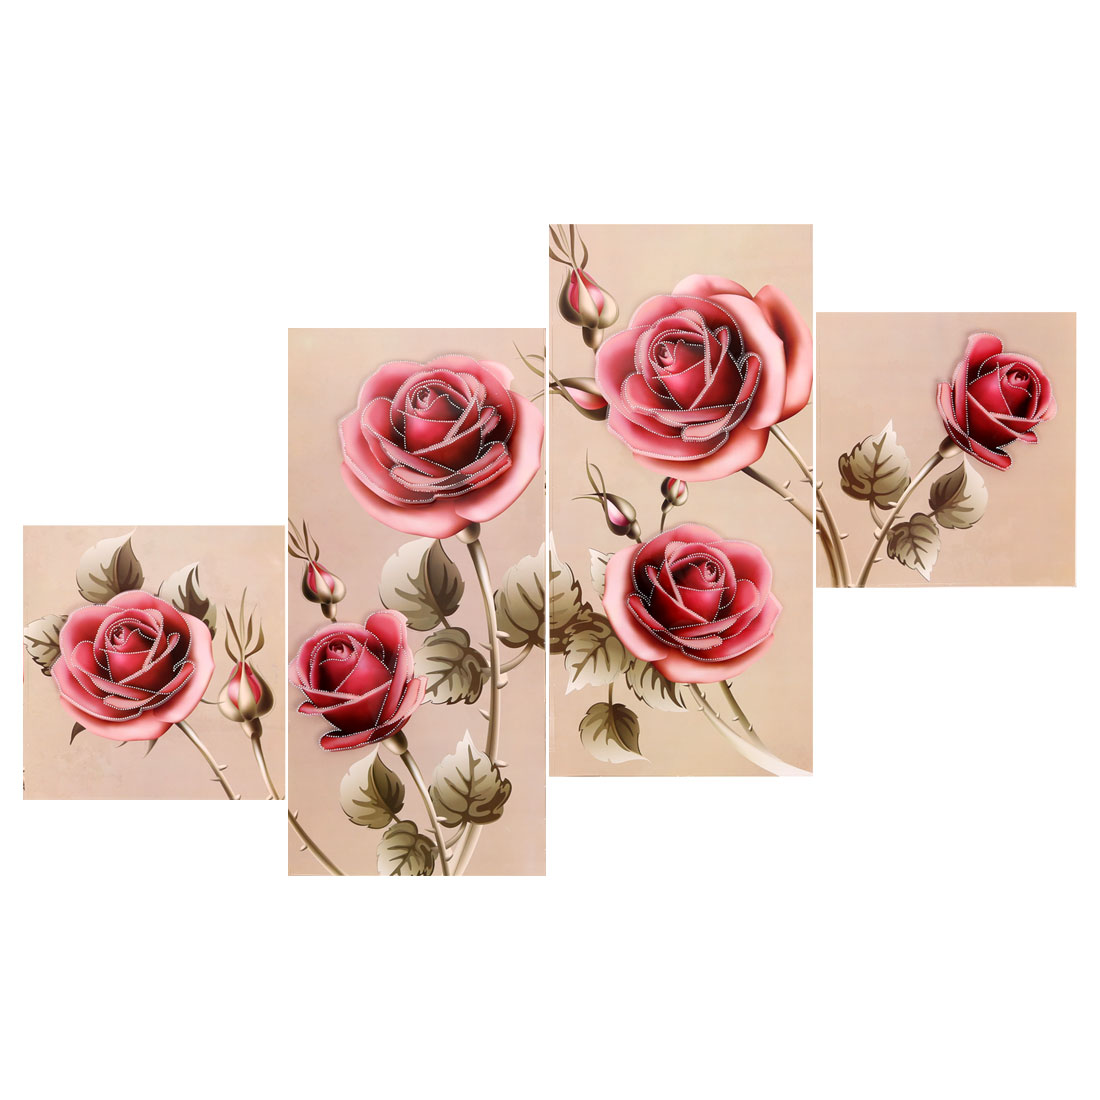 Living Room Rose Pattern Removable 3D Wall Sticker Decal Mural Art Decoration